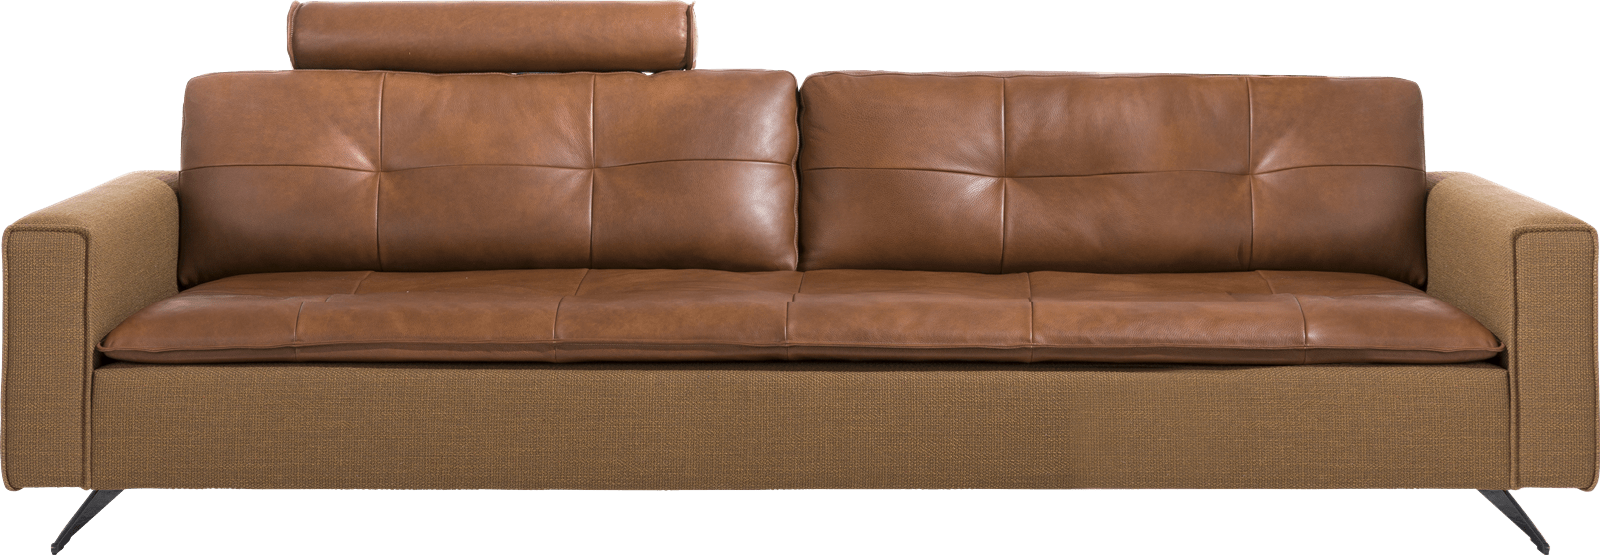 XOOON - Flint - Industrie - Sofas - 3.5-sitzer - 210 cm